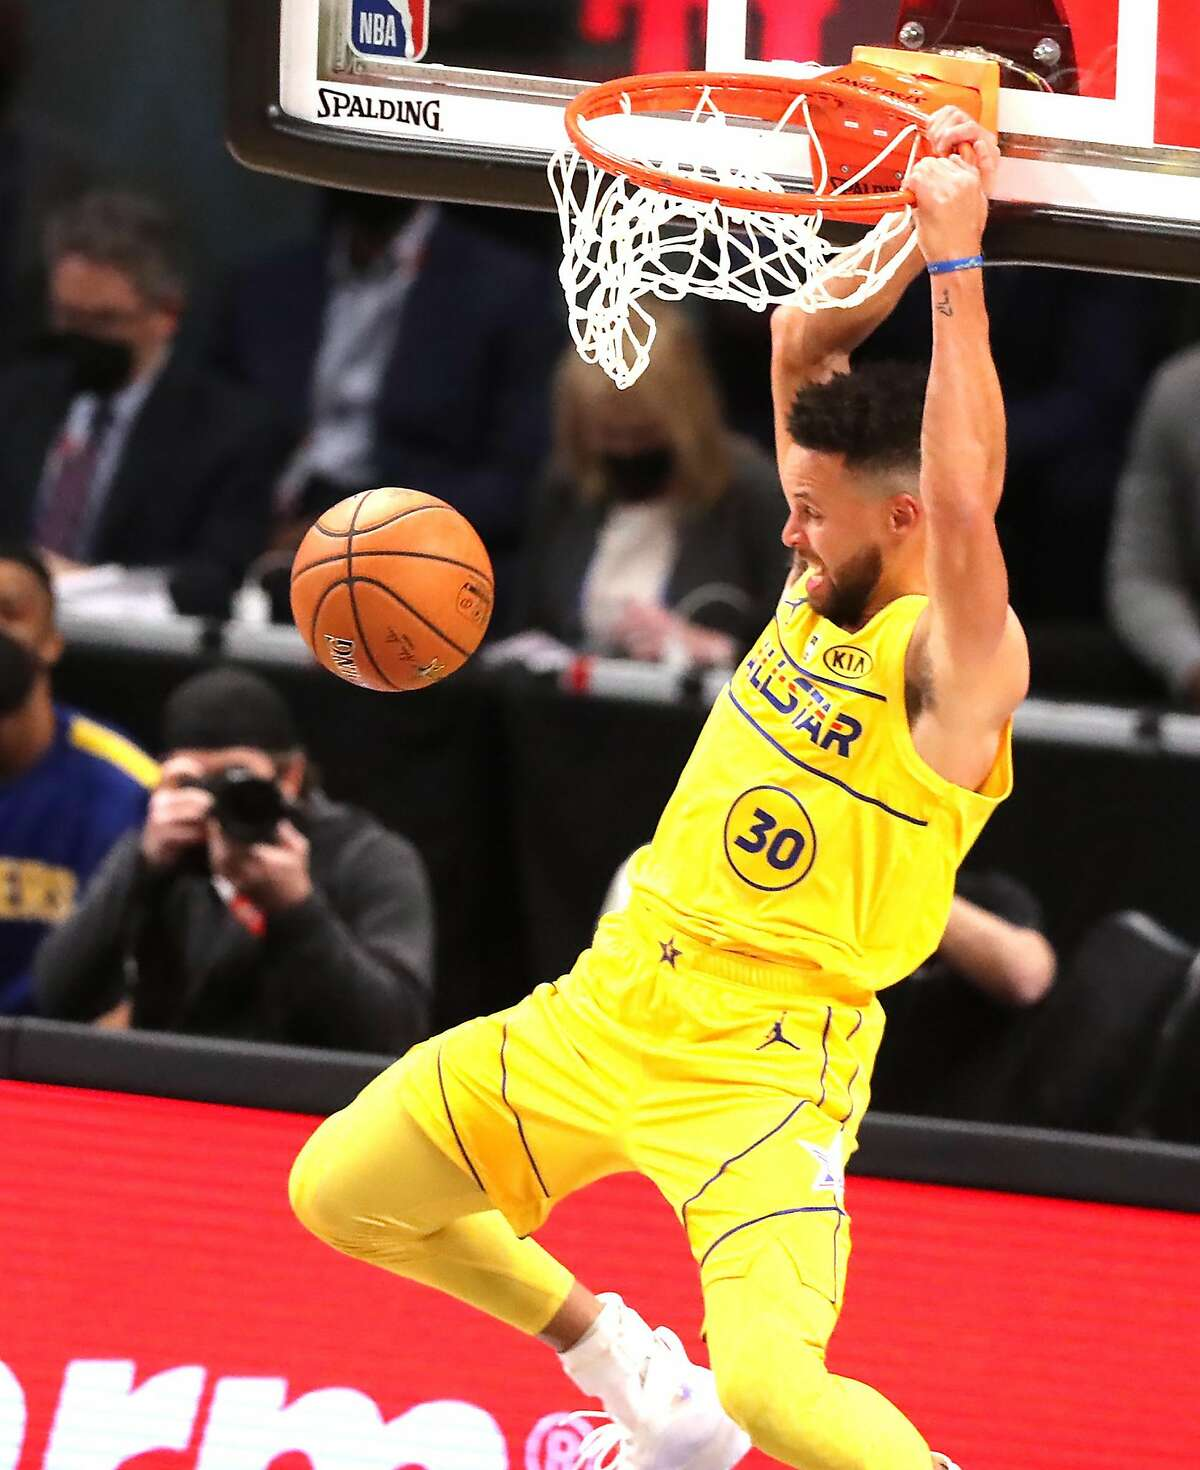 Stephen Curry throws down a rare dunk for two of his 26 points for Team LeBron in an All-Star Game victory.